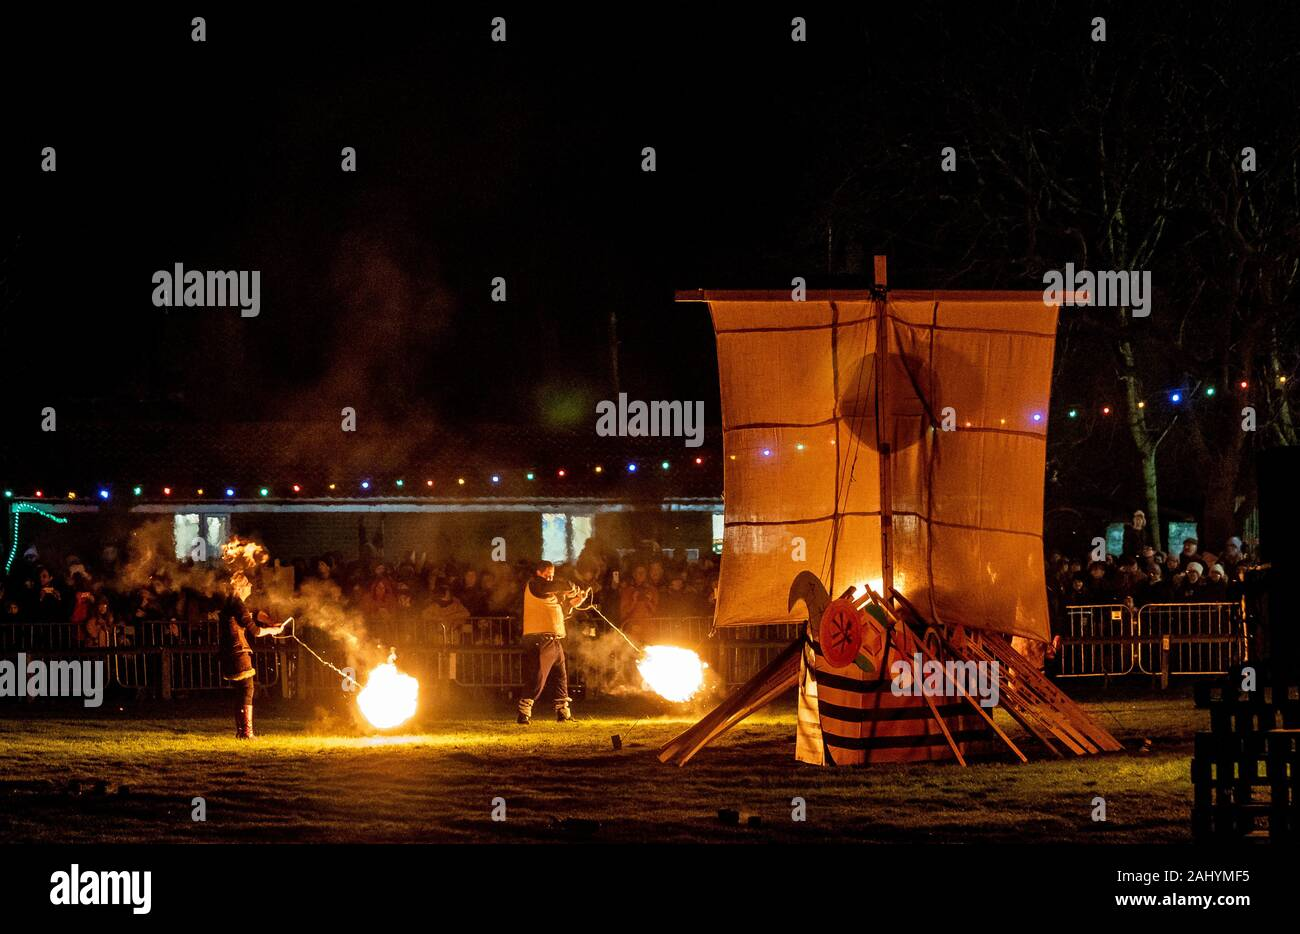 Flamborough Fire Festival. New Year's Eve 2019 celebrating the village connection with Viking History. Featuring the Flamborough Fireballs, Torchlit Procession and burning of a Viking Longboat on the village green. Stock Photo